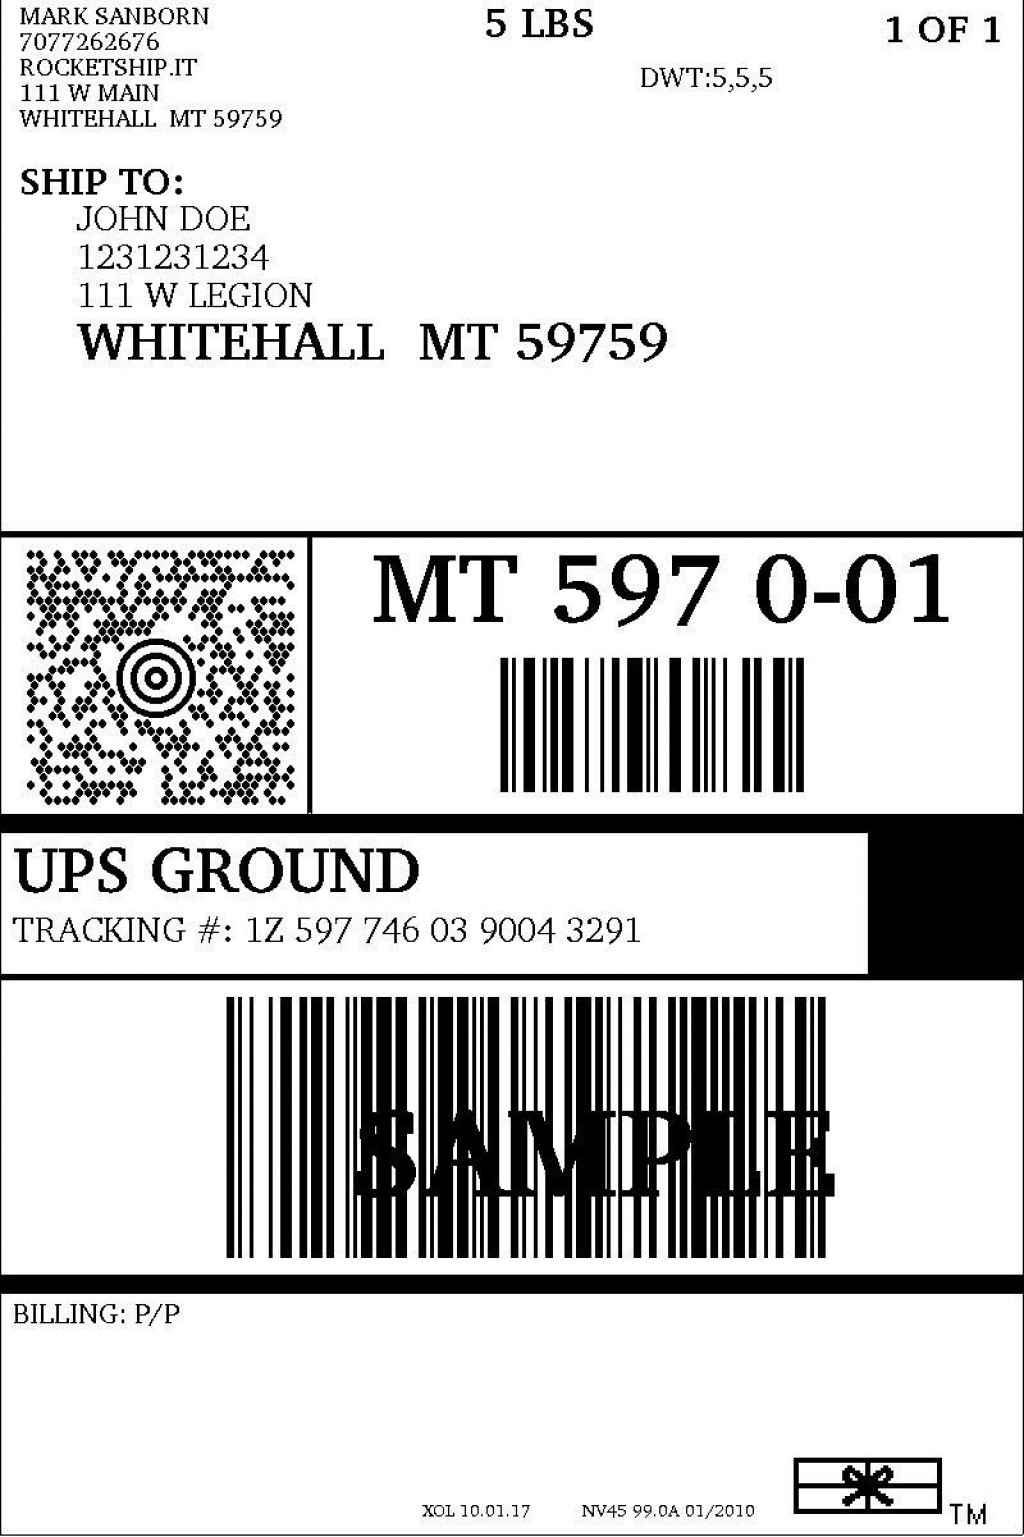 004 Phenomenal Up Shipping Label Template Free Example Large